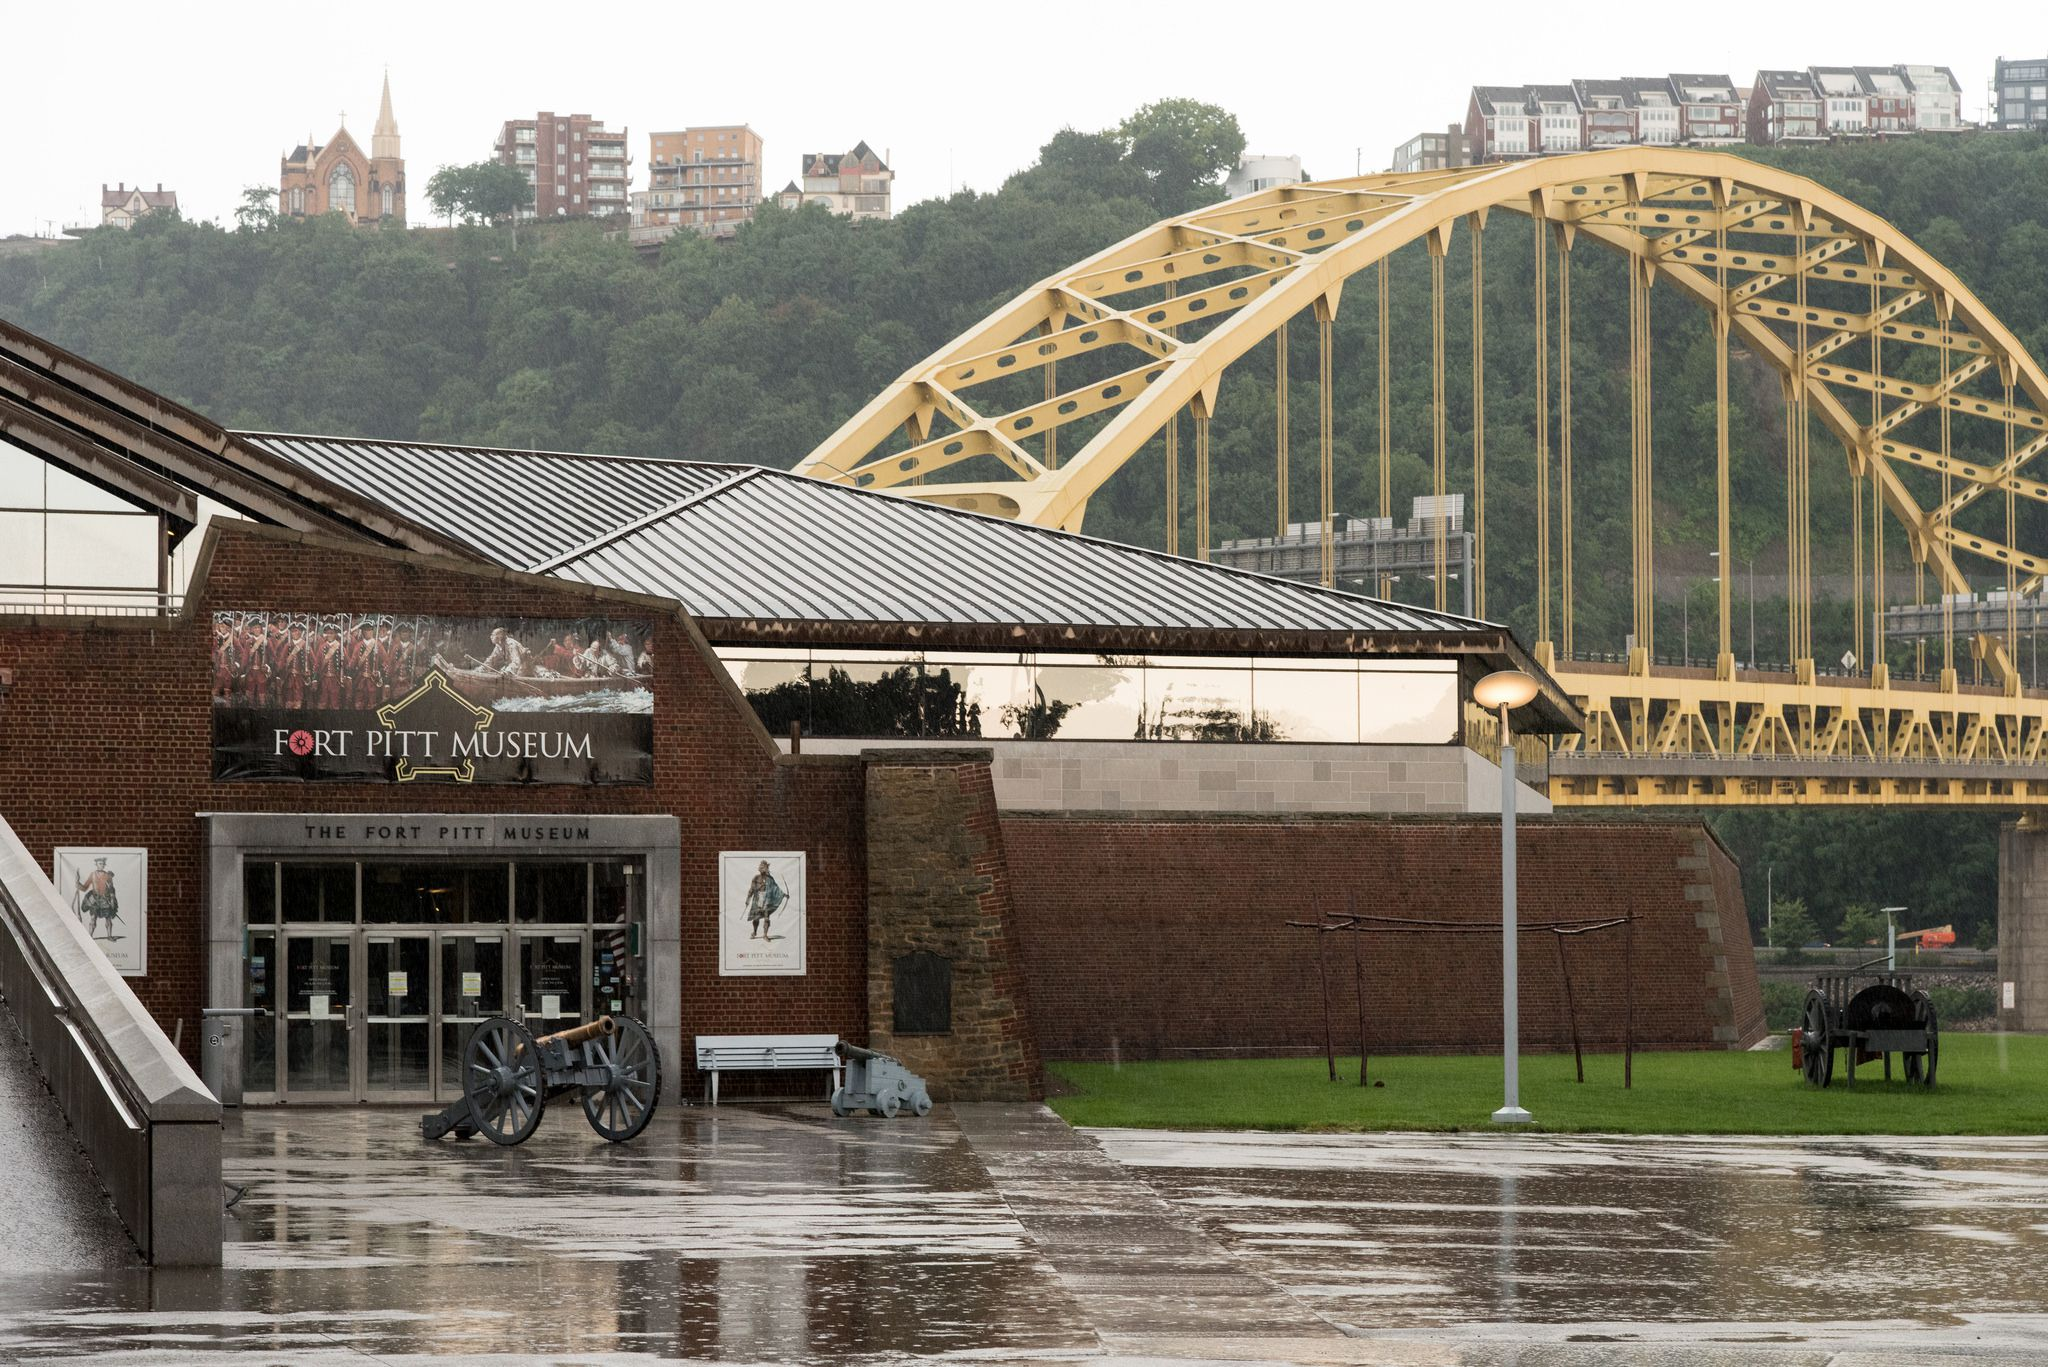 Fort Pitt Museum And Block House Visitors' Guide